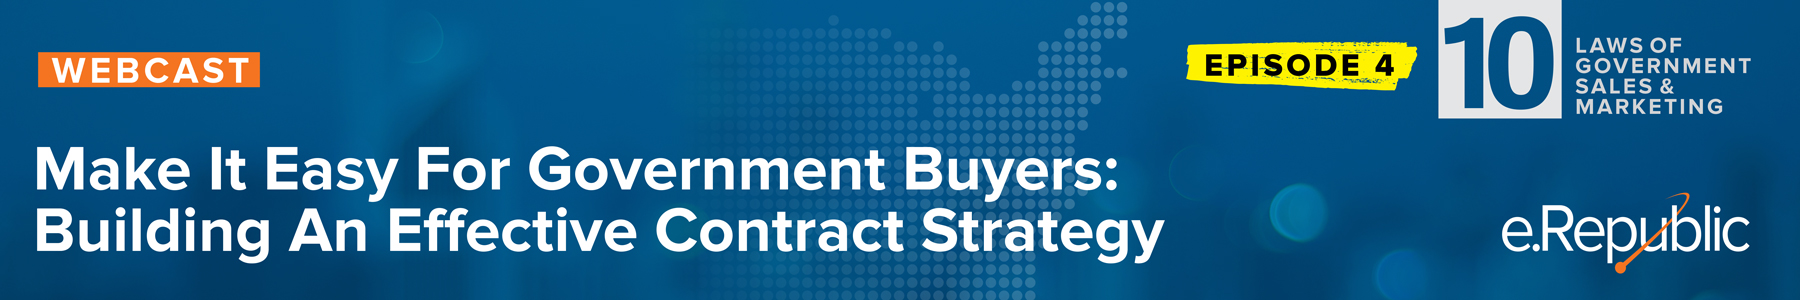 Episode 4: Make it Easy for Government Buyers: Building an Effective Contract Strategy